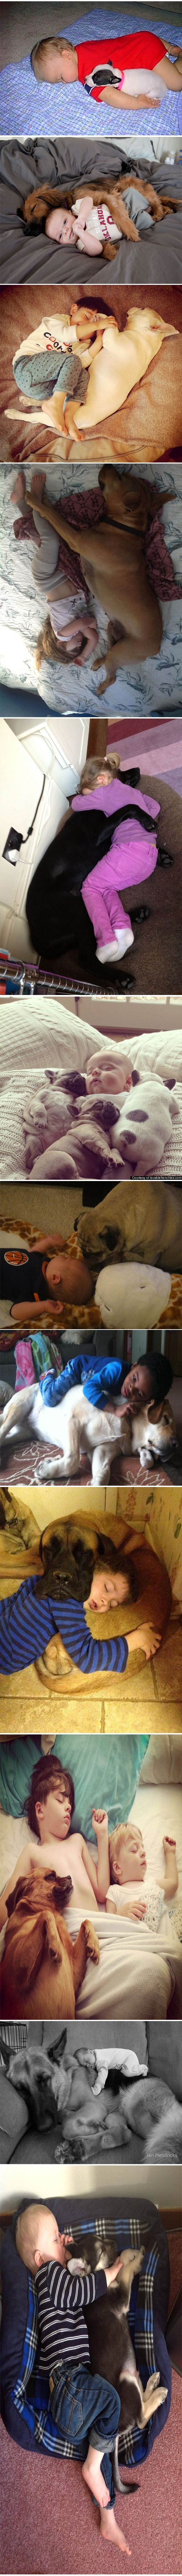 This is why dogs are great.